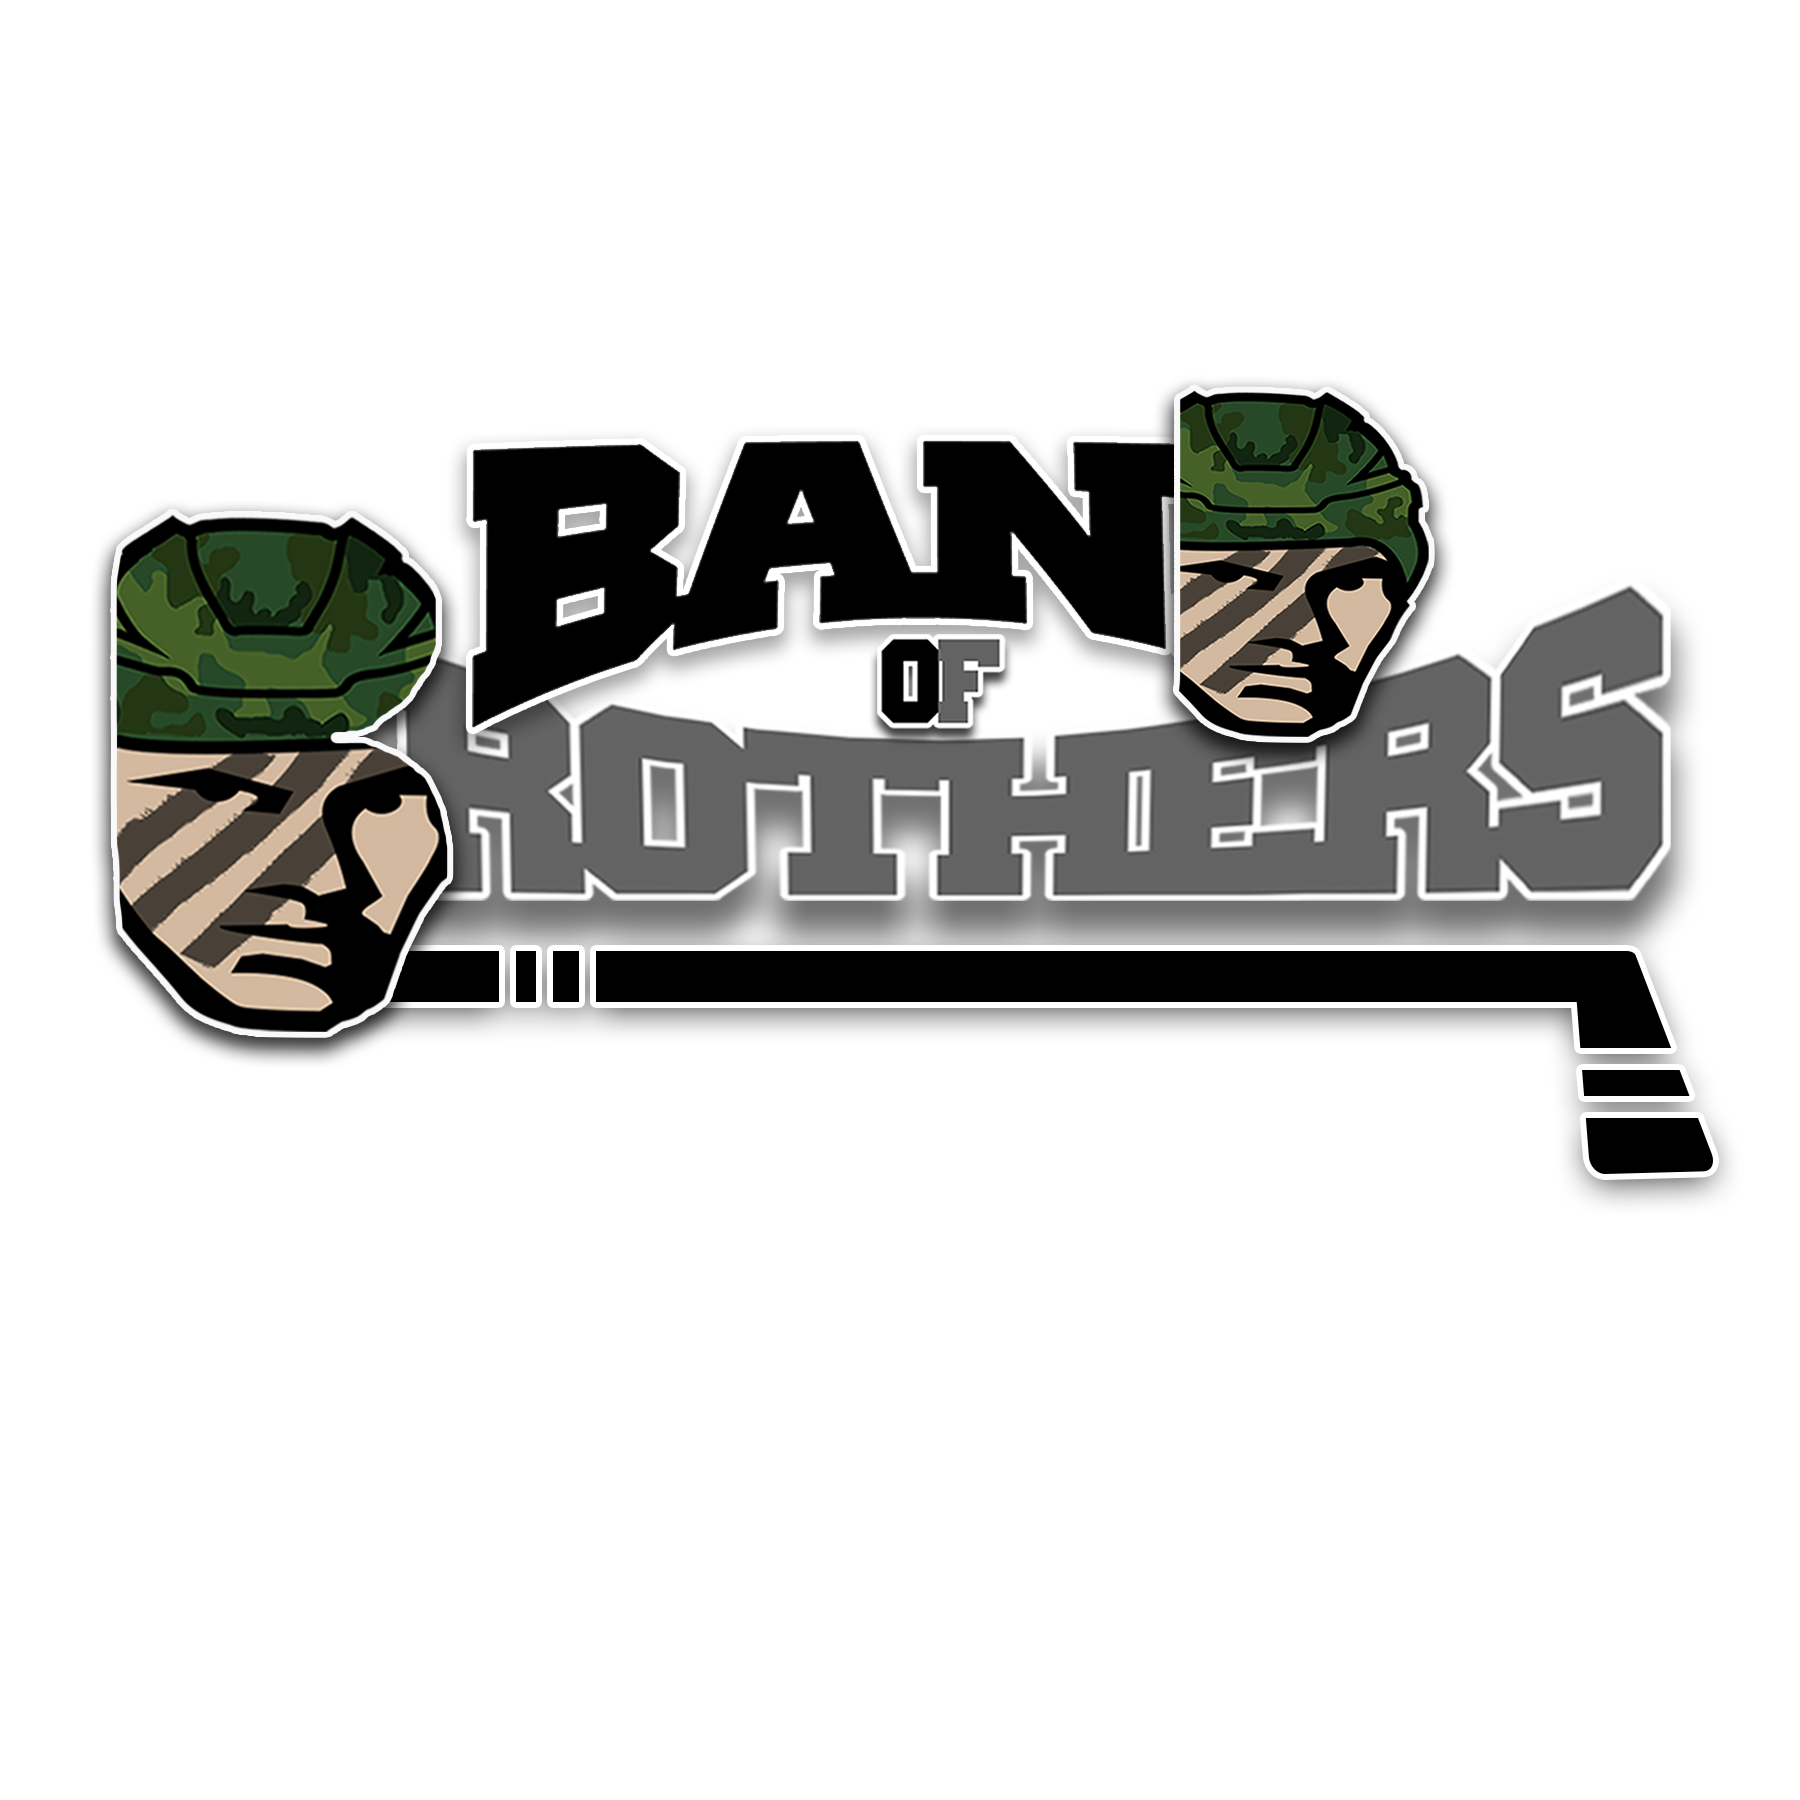 Logo Design by Lemuel Arvin Tanzo - Entry No. 34 in the Logo Design Contest Inspiring Logo Design for Band of Brothers.